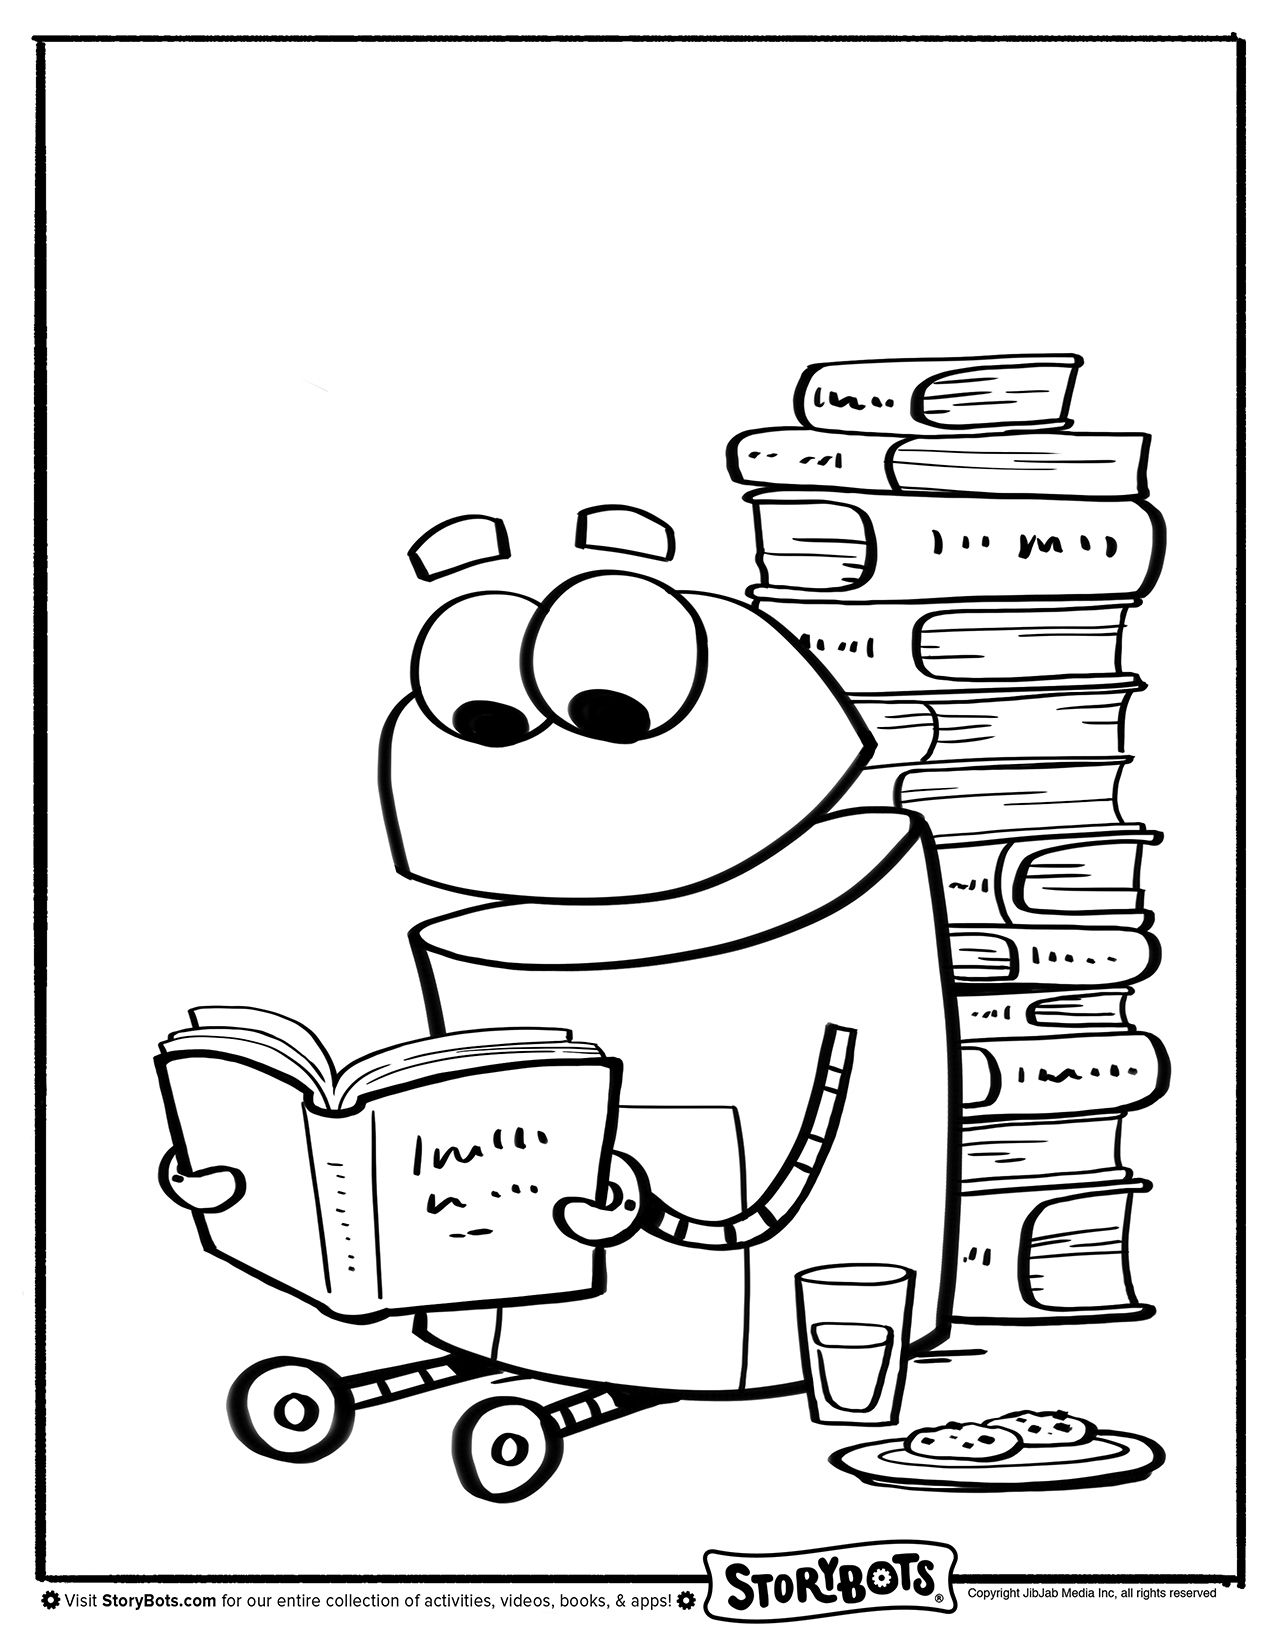 Coloring Sheet Reading Story Bots Back To School Activities Activity Sheets